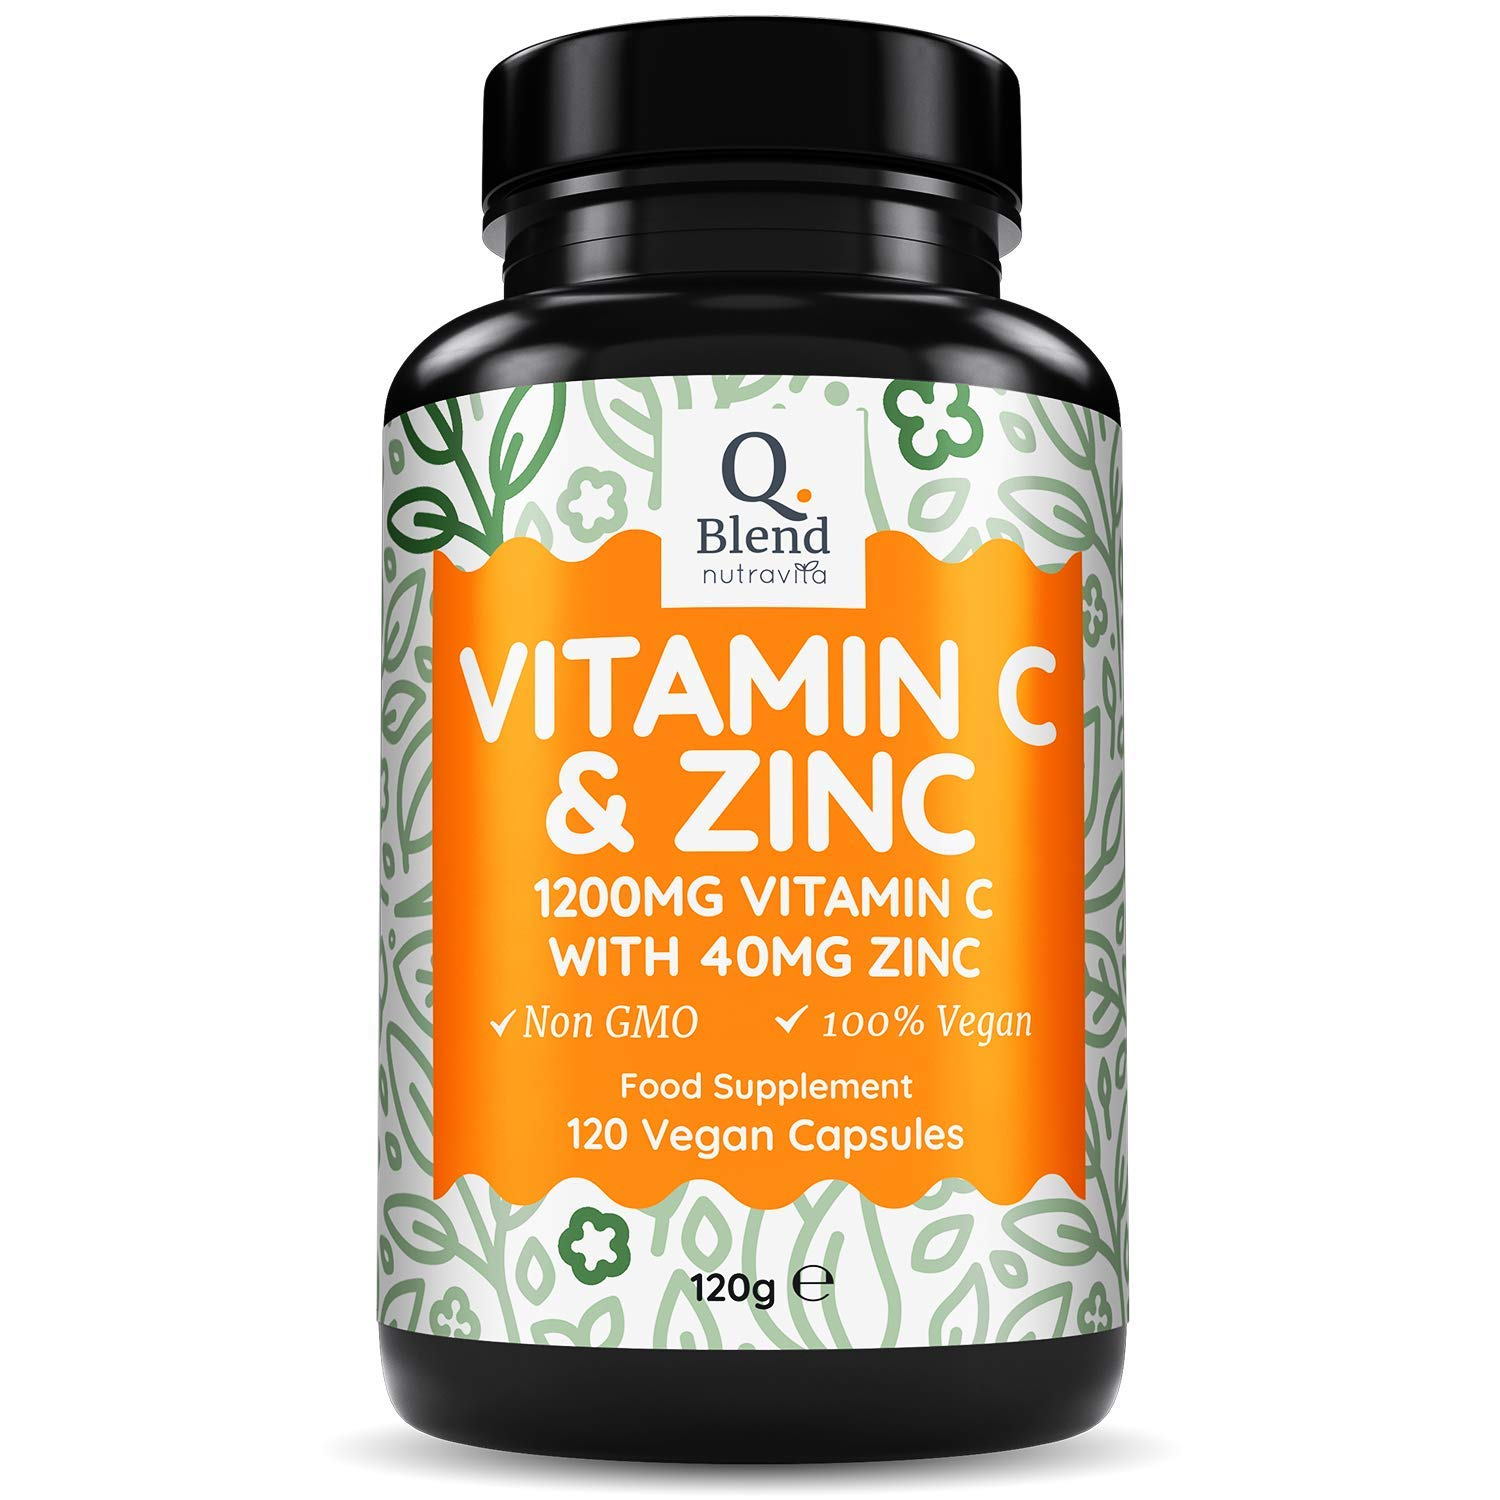 Vitamin C 1200mg and Zinc 40mg – High Strength Vegan Ascorbic Acid – for Normal Immune System – 2 Capsules per Daily Serving – 120 Capsules – 2 Month Supply – Made in The UK by Nutravita